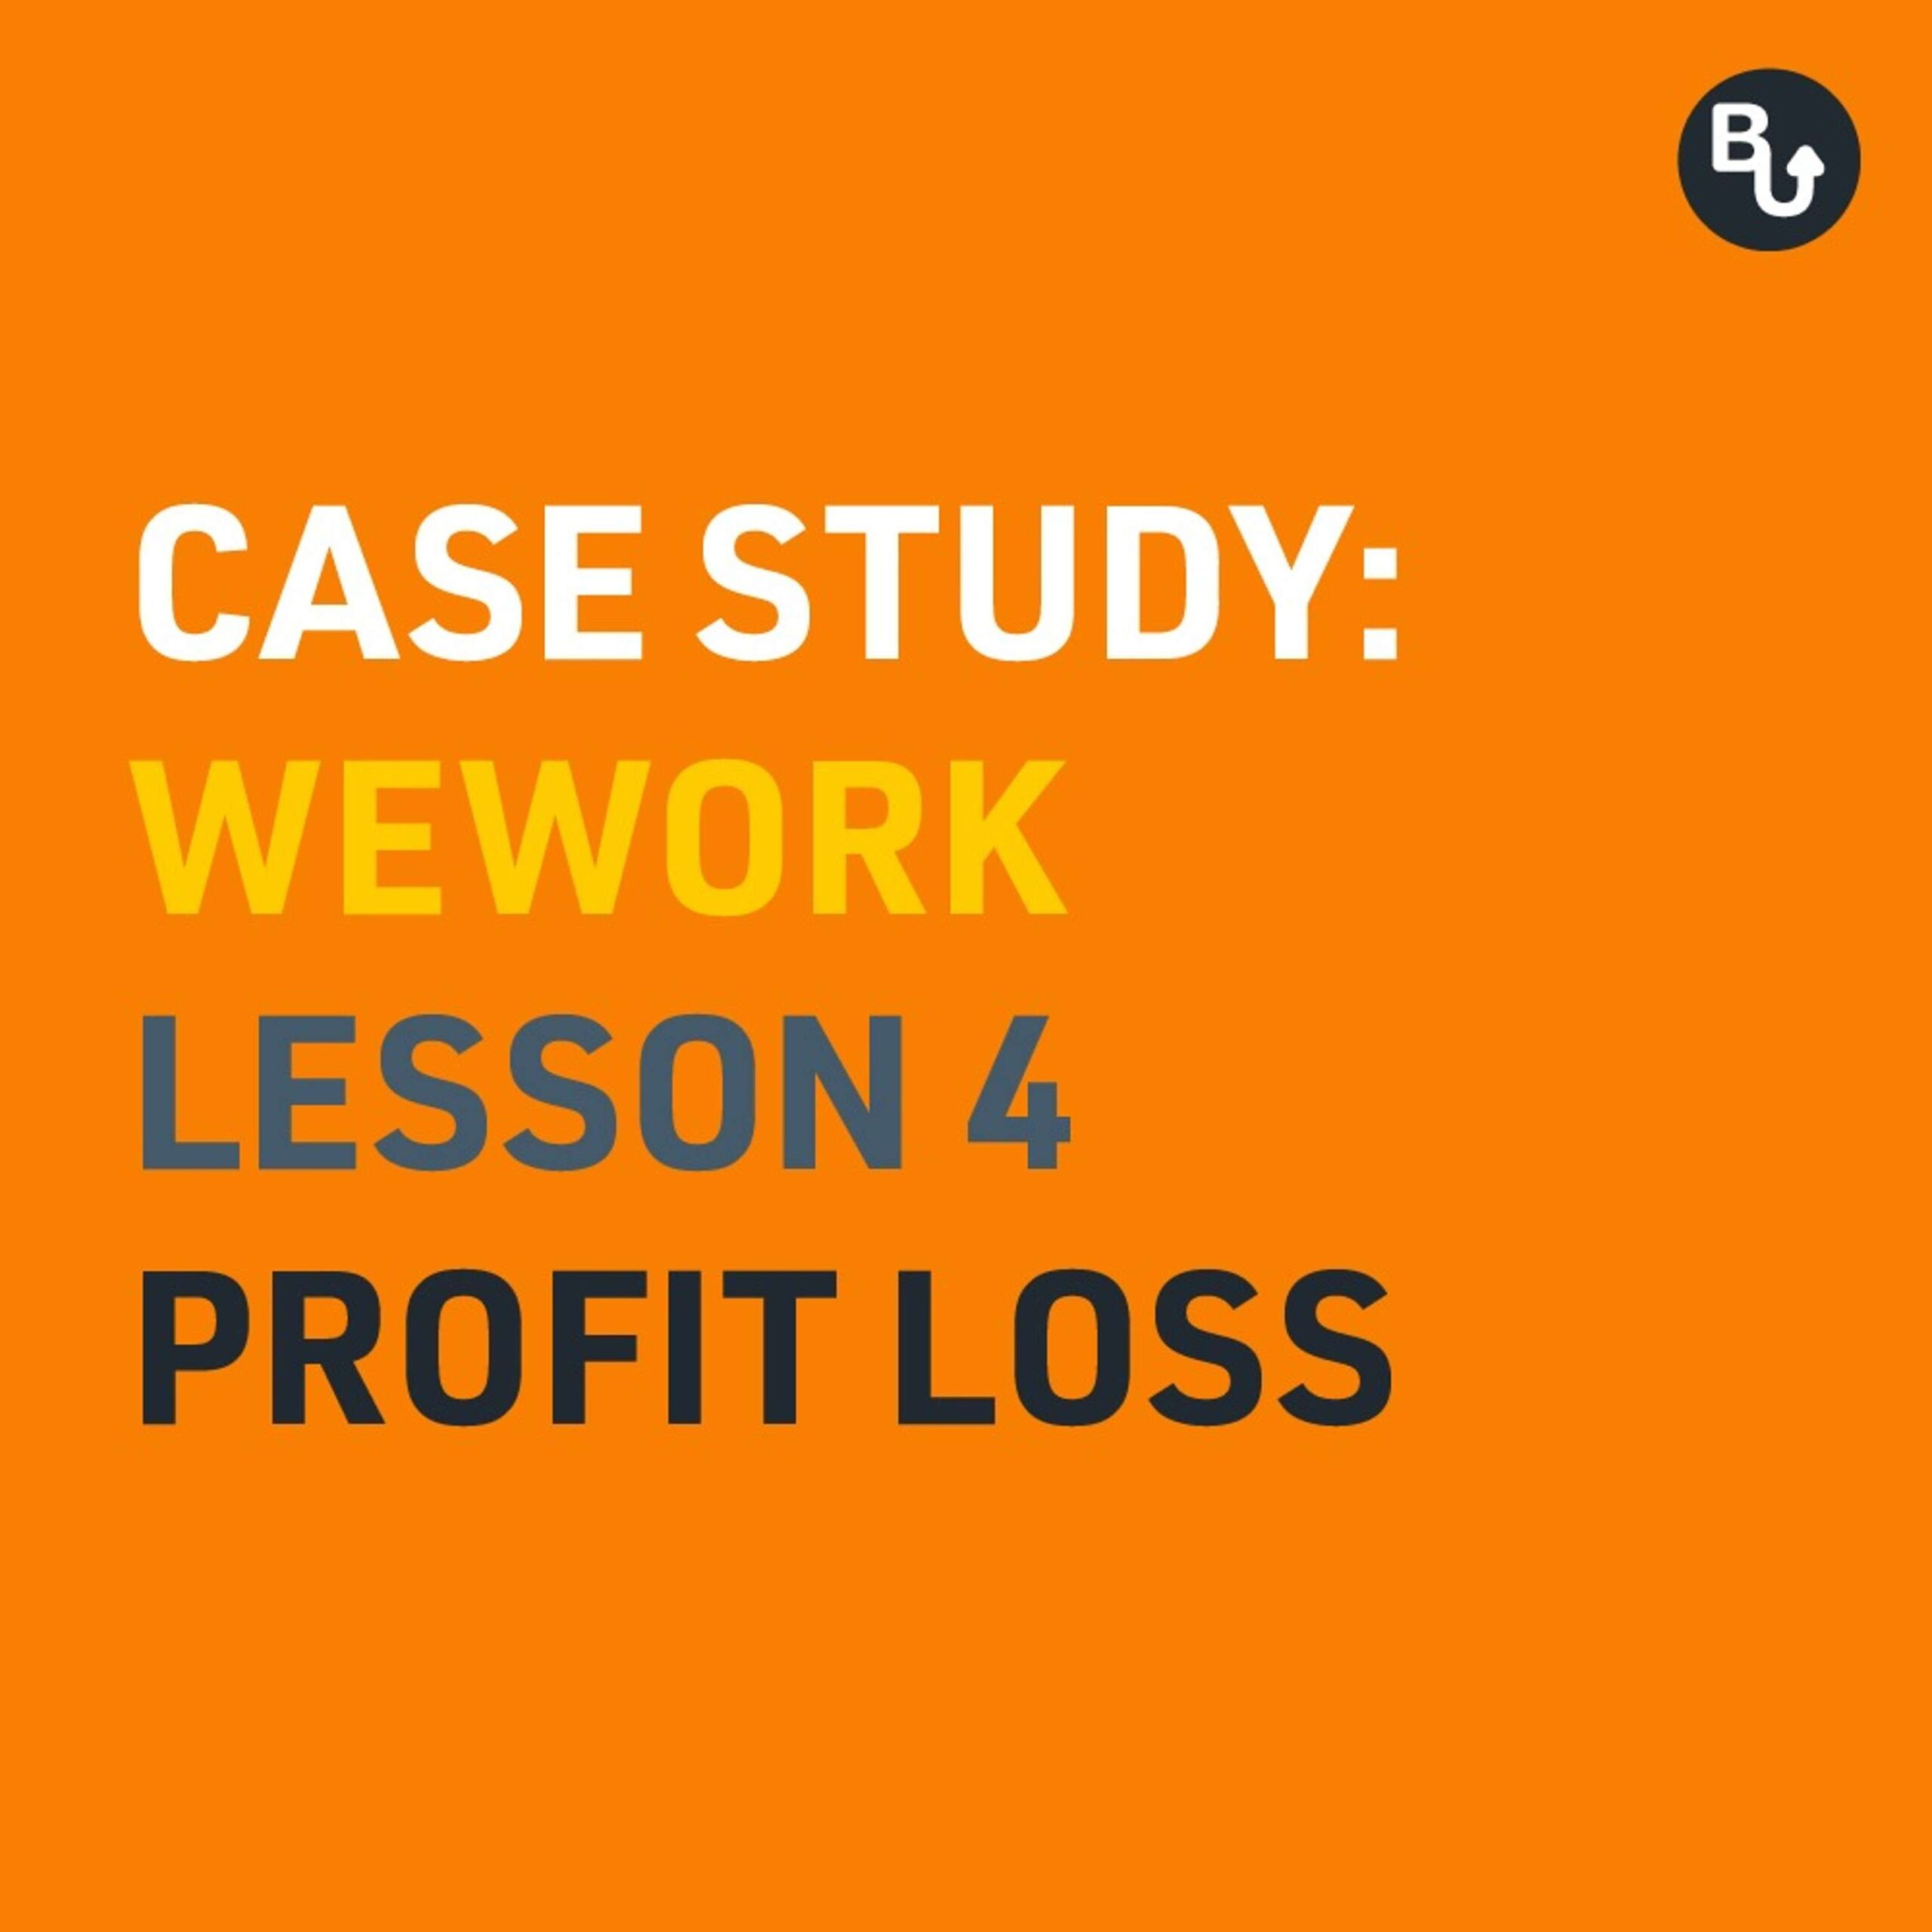 A deep dive into the financials of the WeWork Case Study - Profit